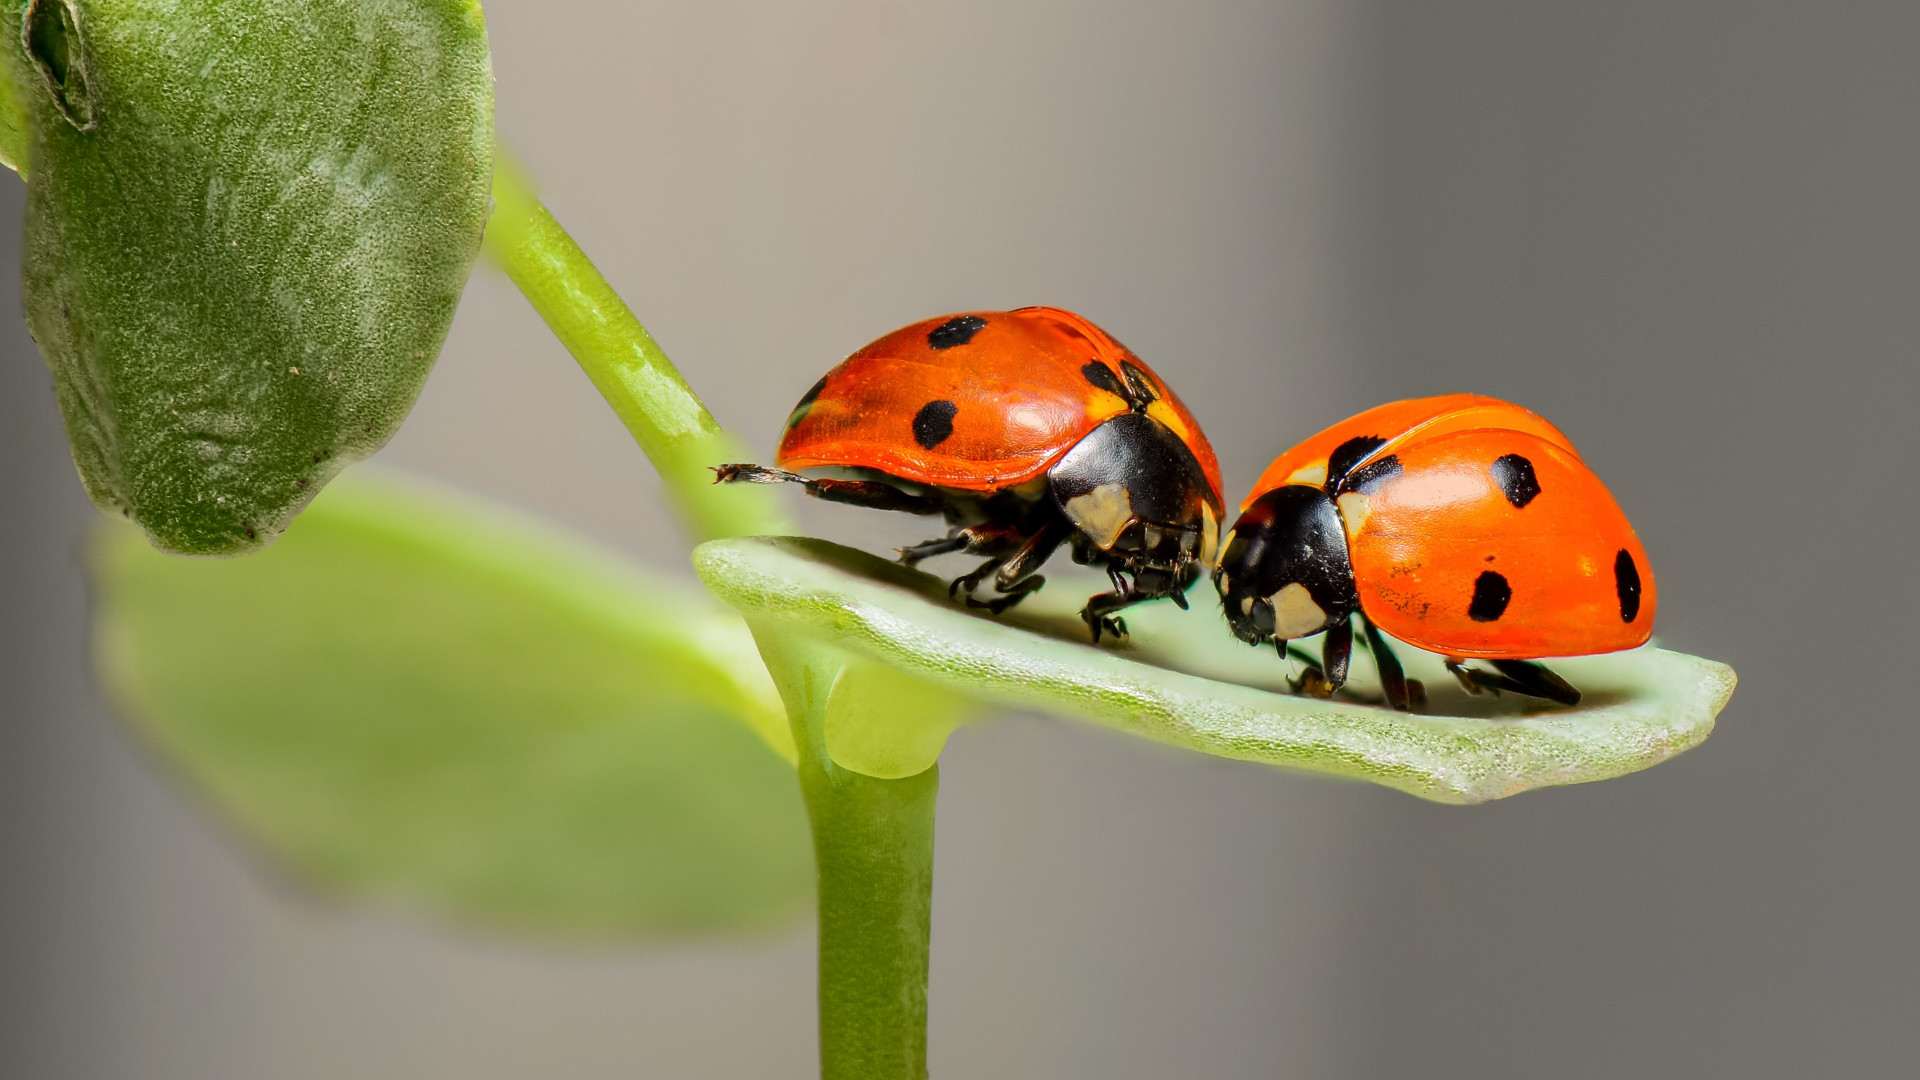 Ladybird, the insect wallpaper 1920x1080